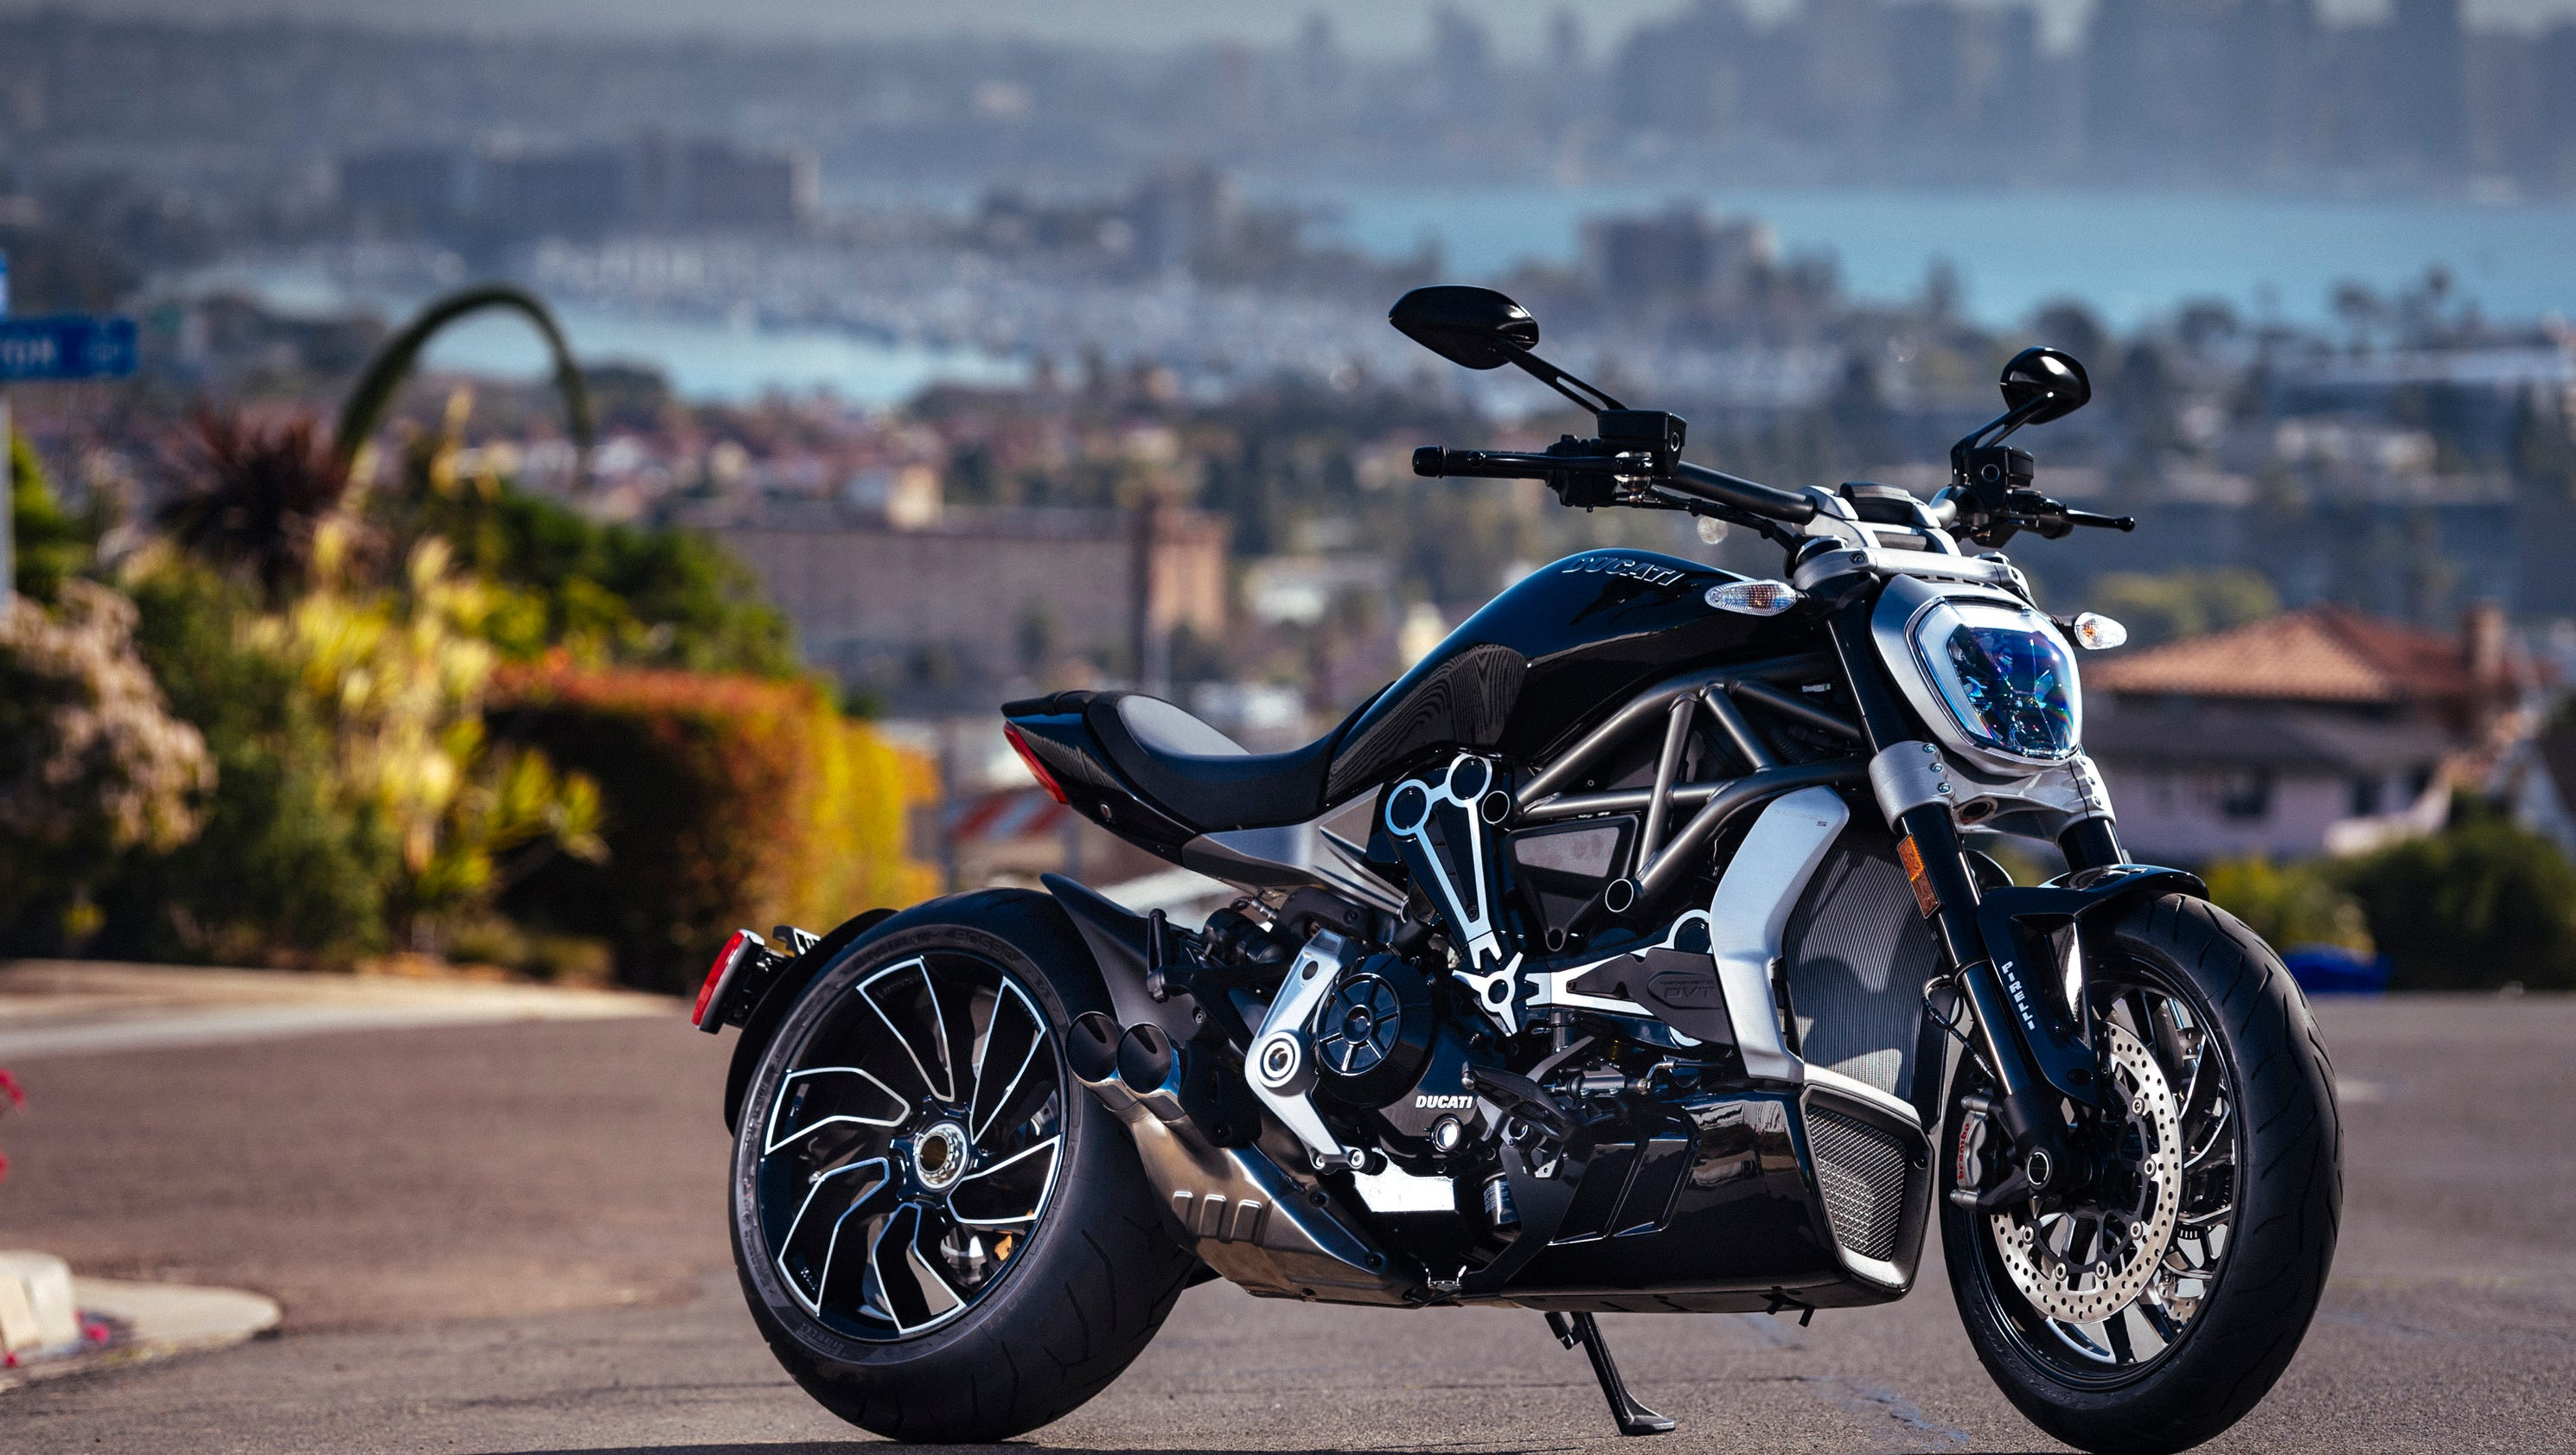 Motorcycle Review Ducati Xdiavel Is Both A Cruiser And